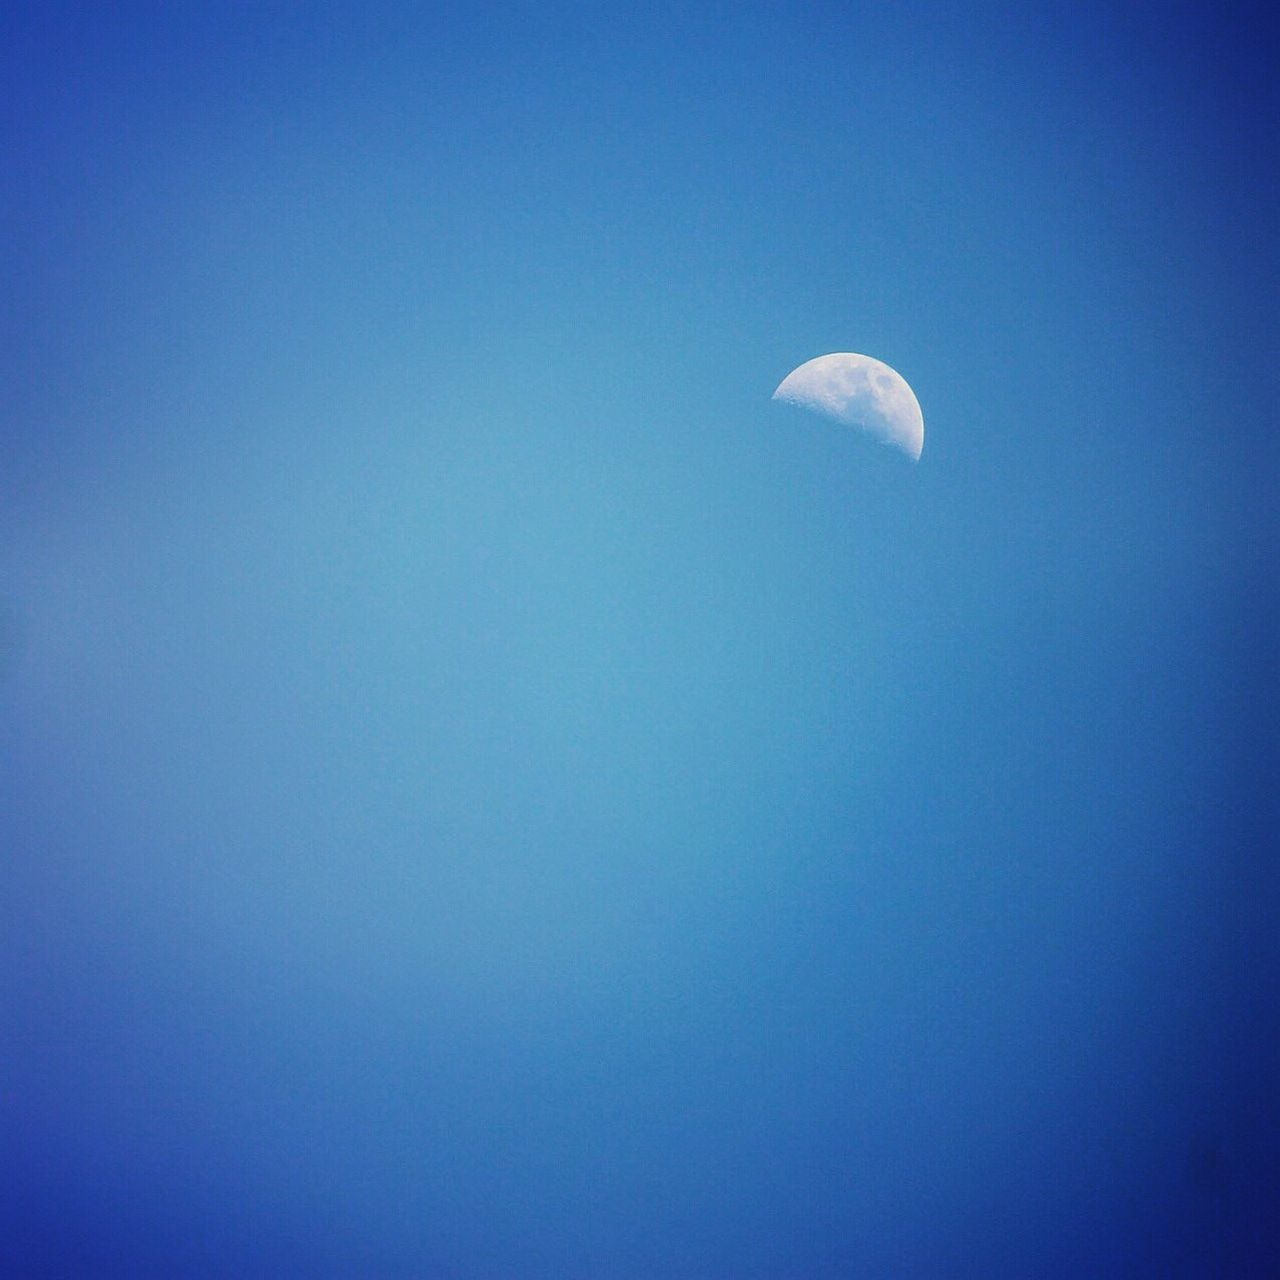 Showcase March Half Moon at High Noon it's winking at me! 😉 some Phenomenons you can only see on the Equator that's why I Love My City Quito Ecuador🇪🇨 💙 My Blue Obsession From My Point Of View Looking Up